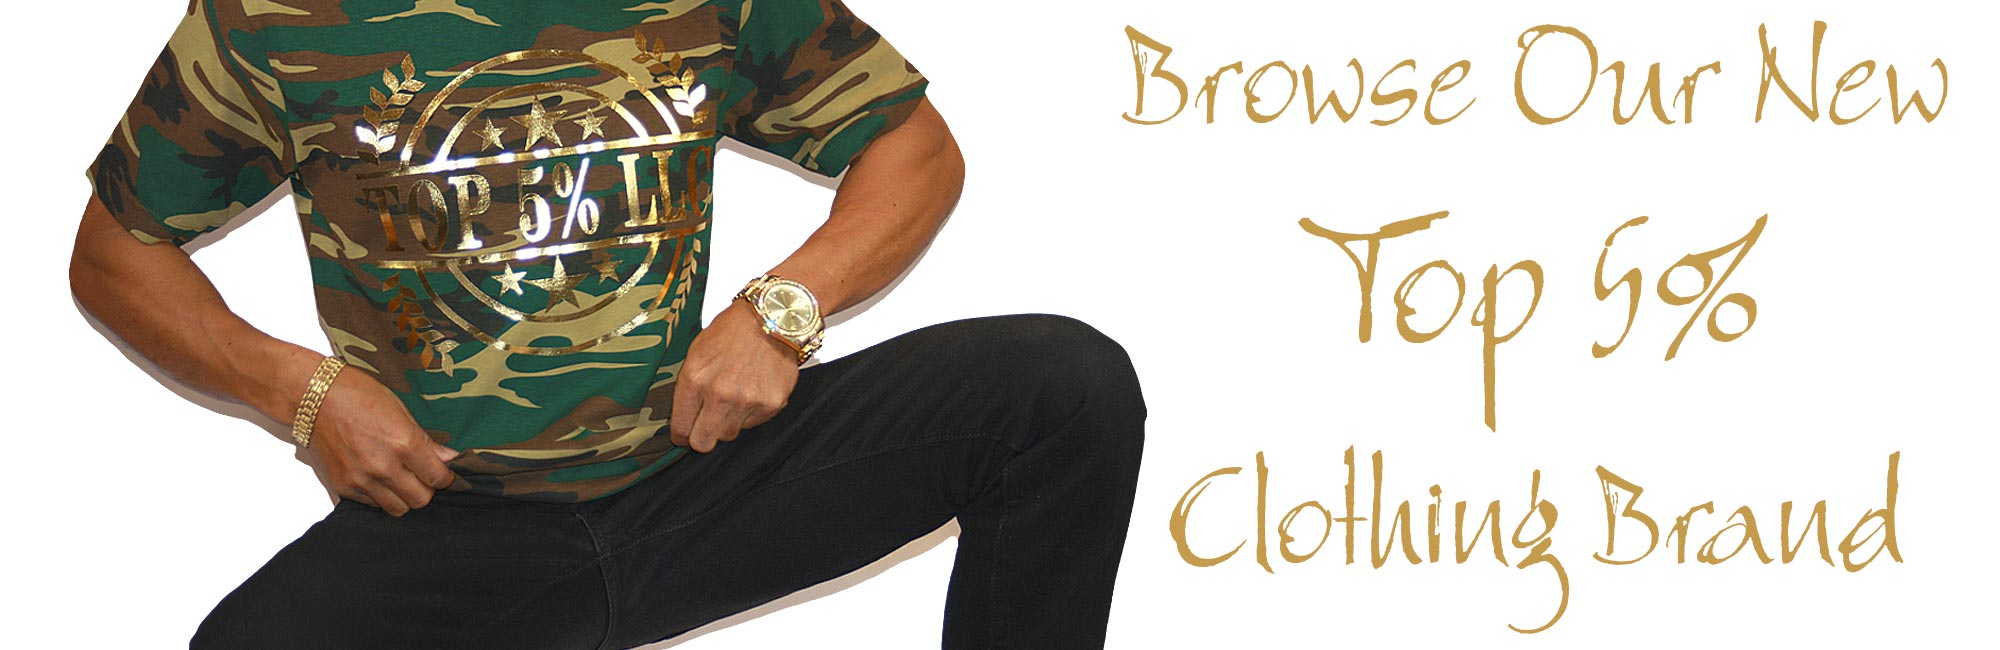 Shop Top 5% Clothing brand banner with guy squating in black pants and camo shirt with gold foil.